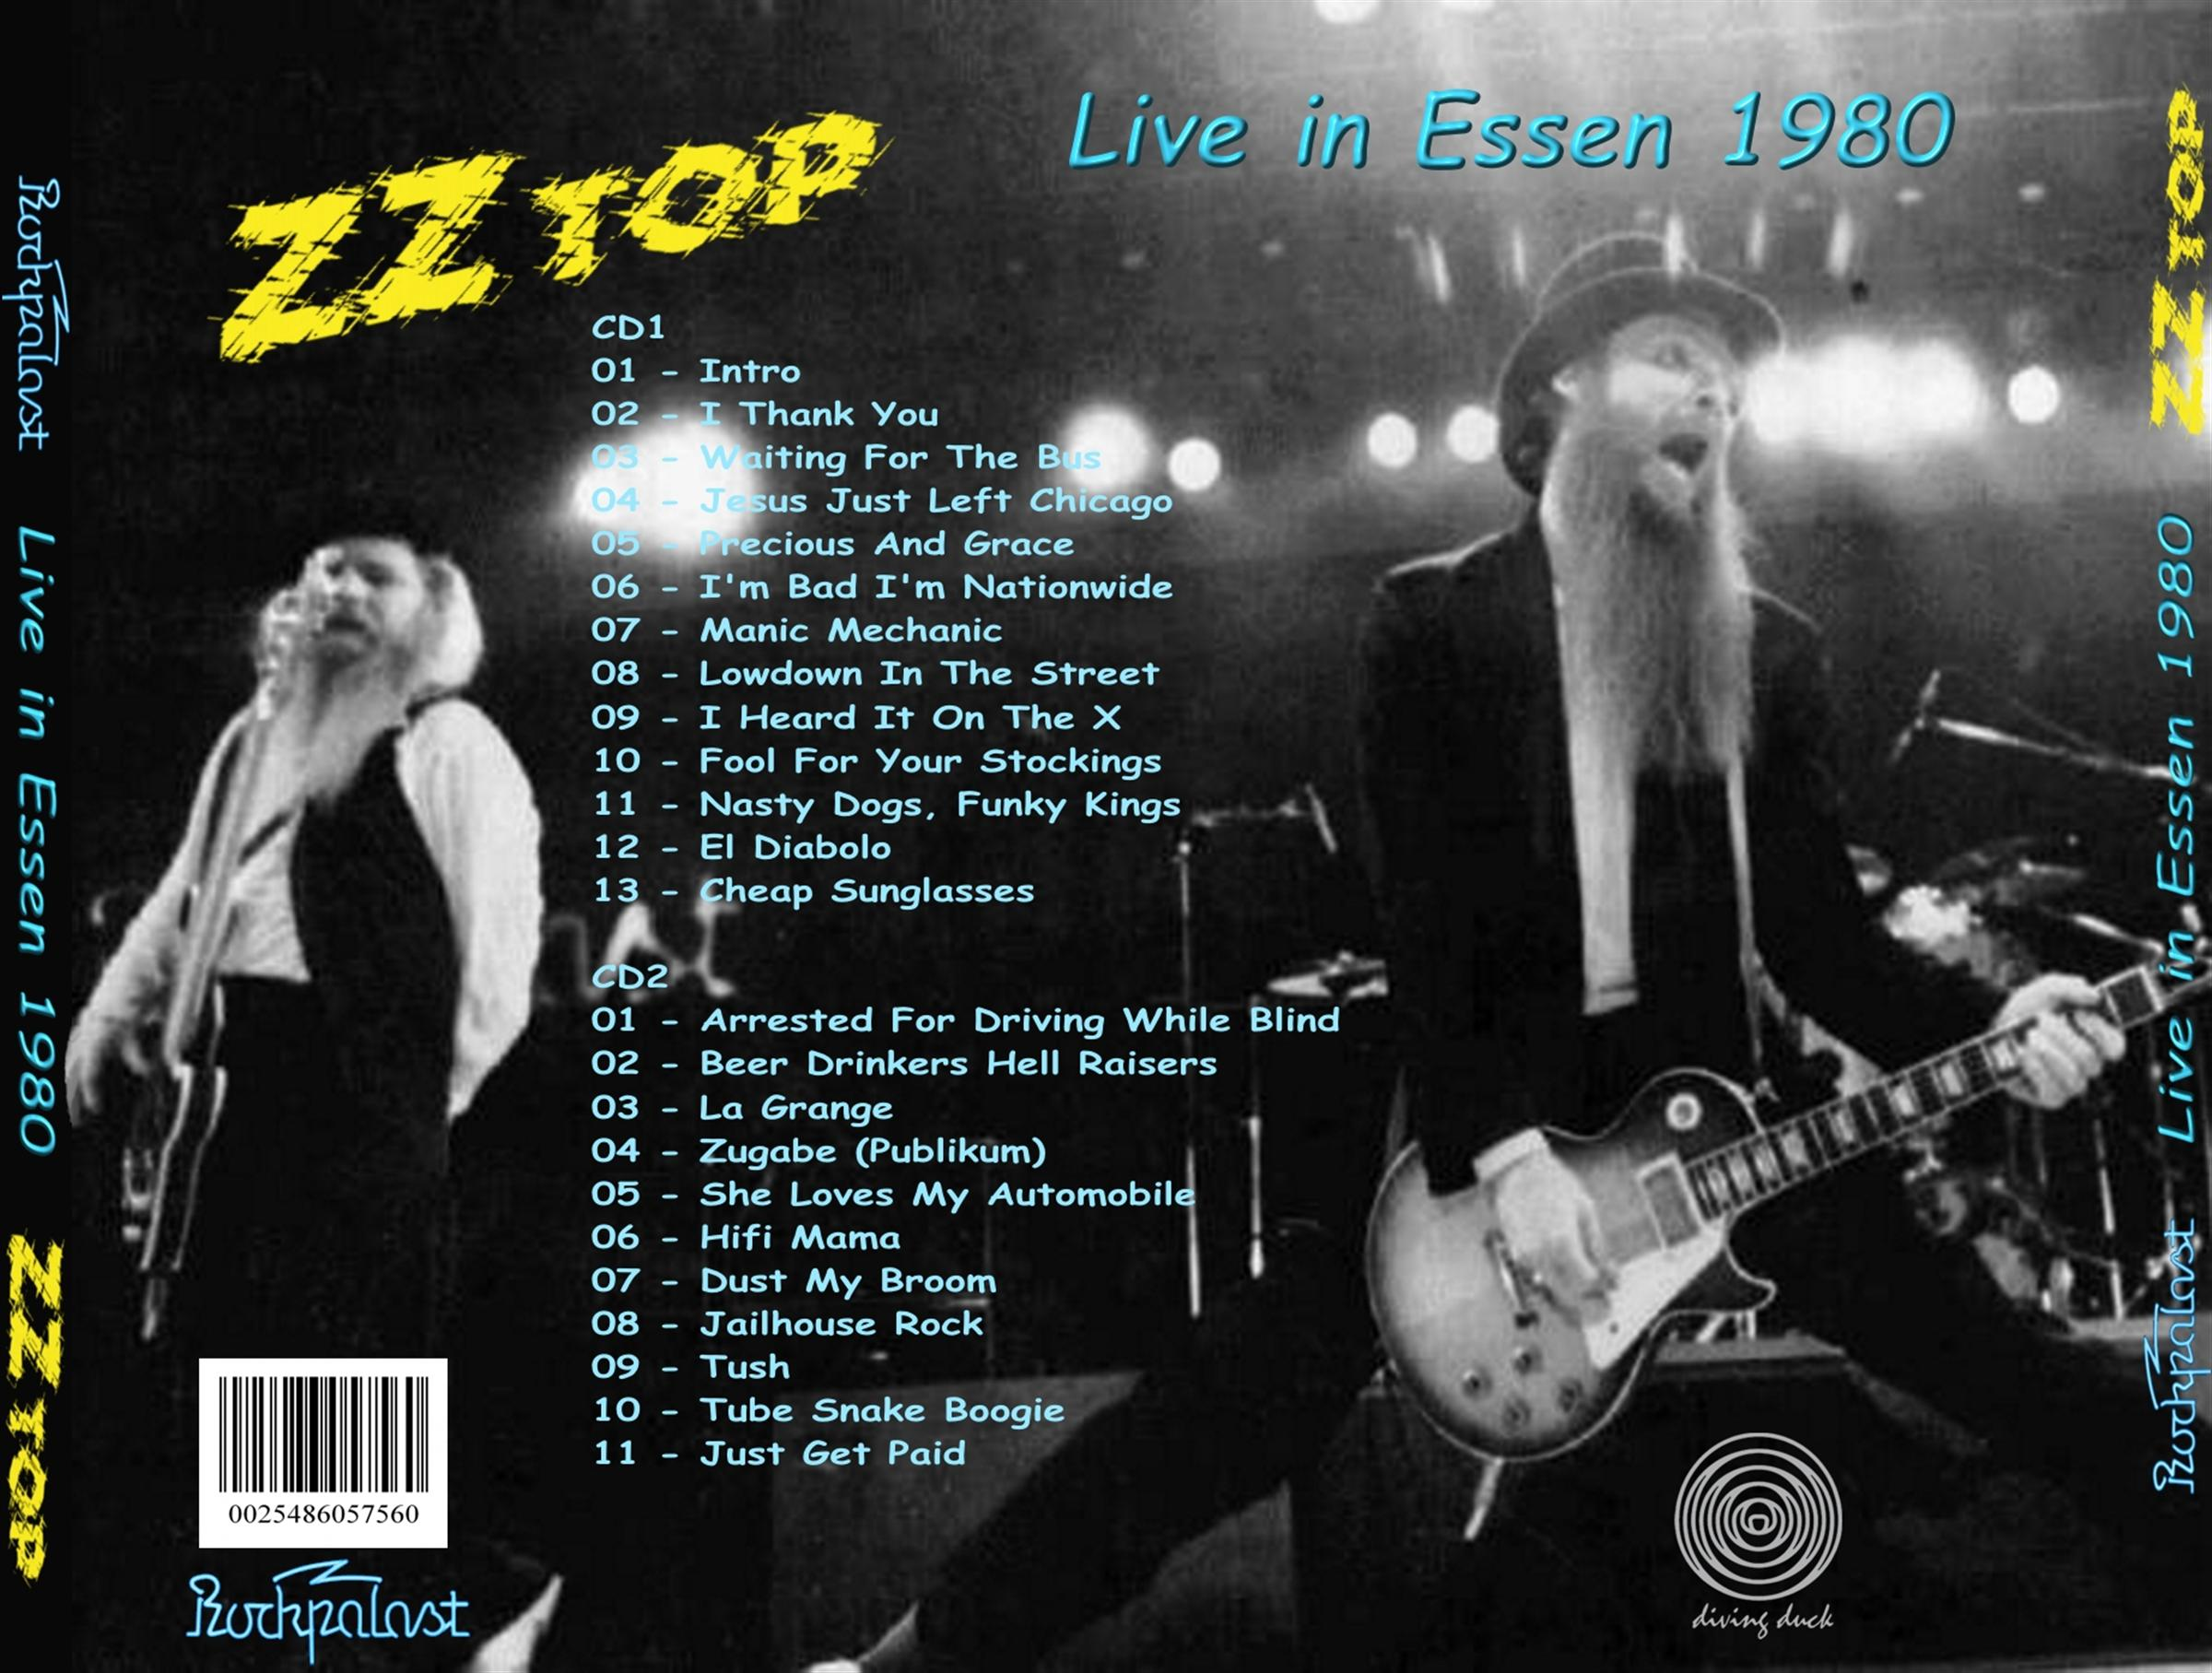 1980-04-19-rockpalast_essen_1980-back